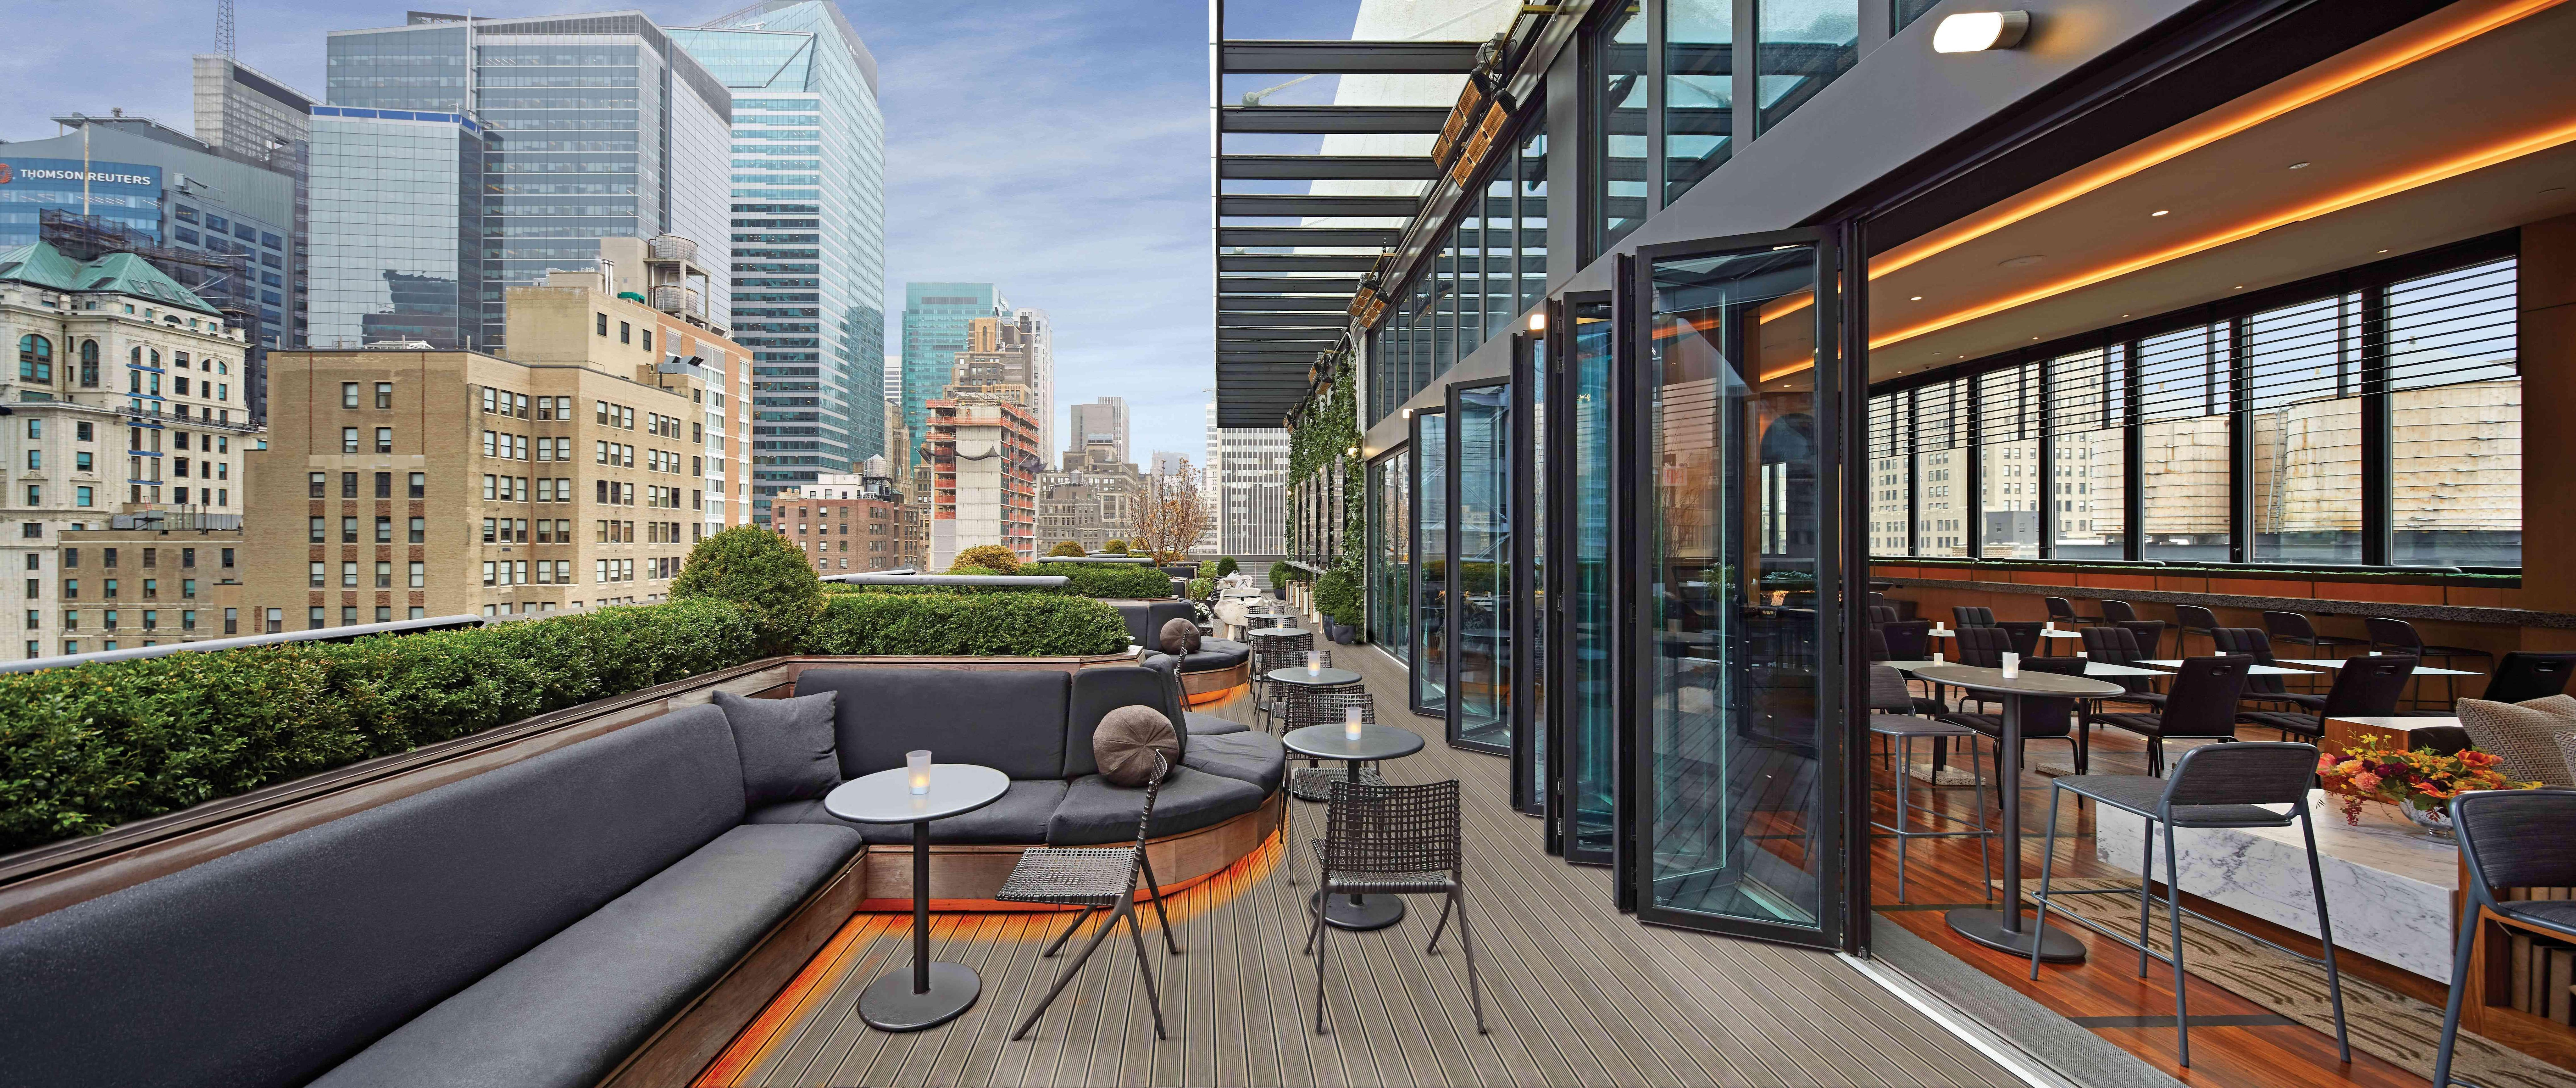 folding-glass-walls-on-rooftop-in-nyc